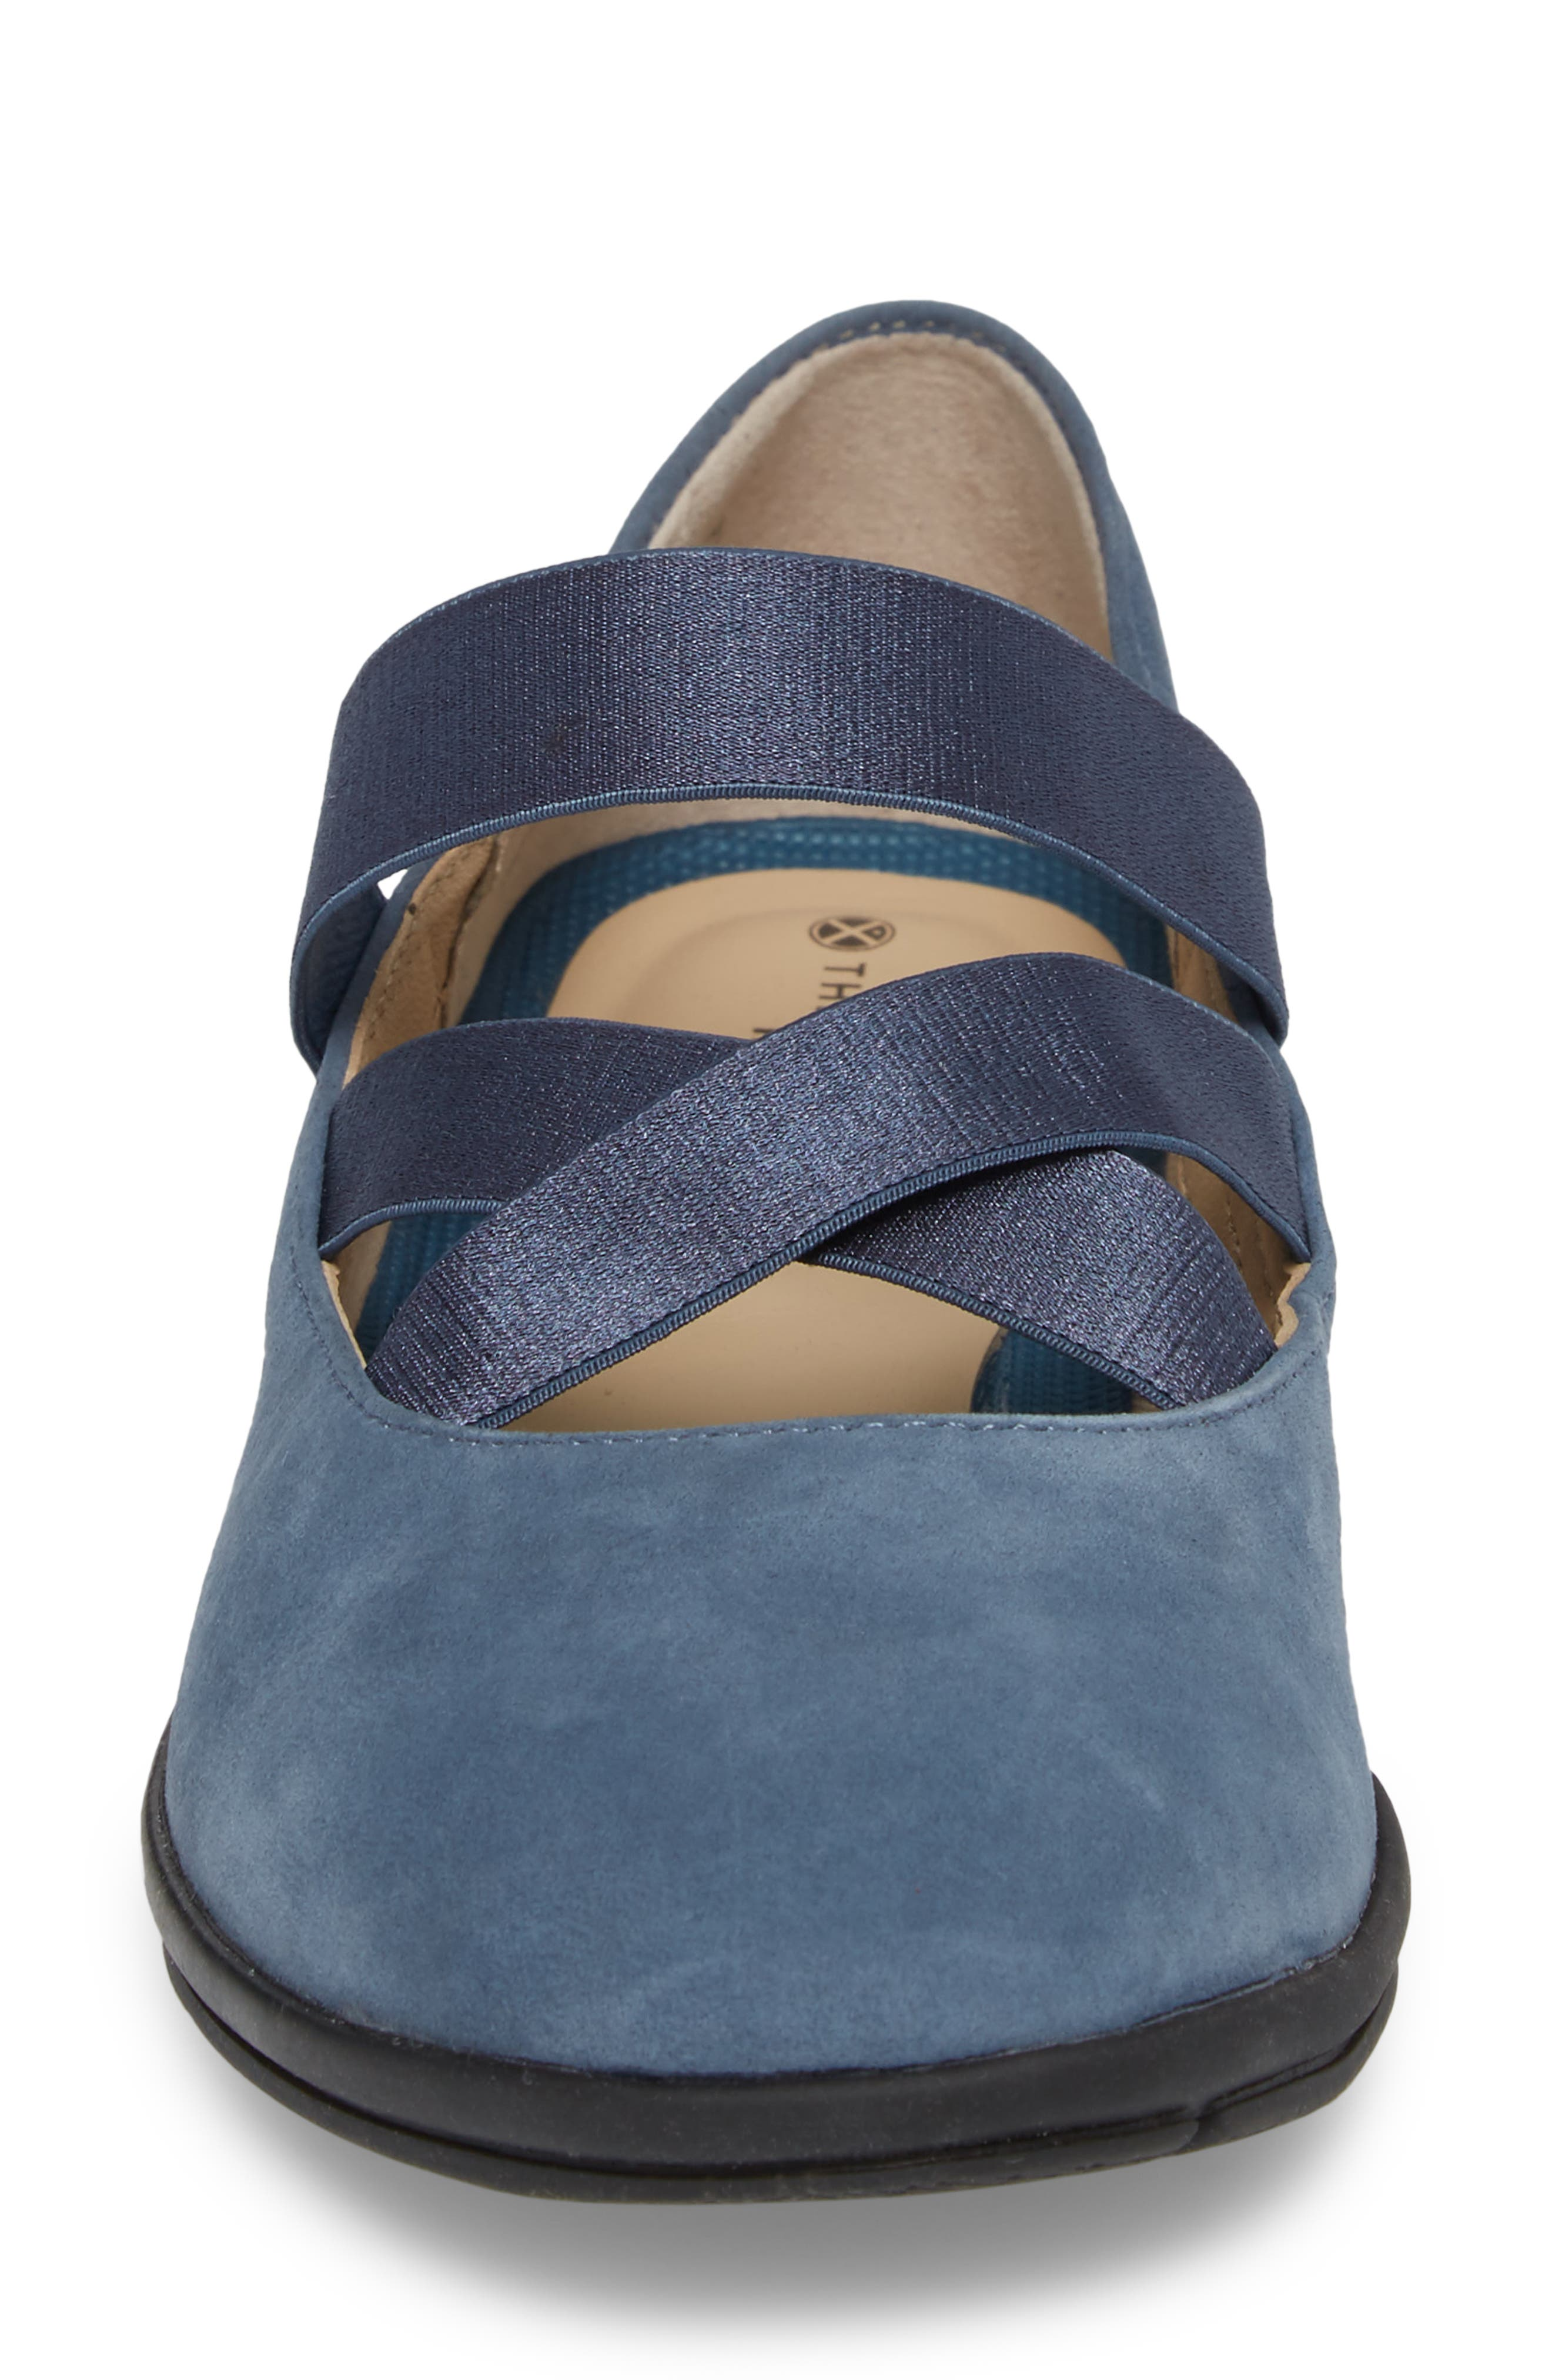 Meree Madrine Cross Strap Flat,                             Alternate thumbnail 17, color,